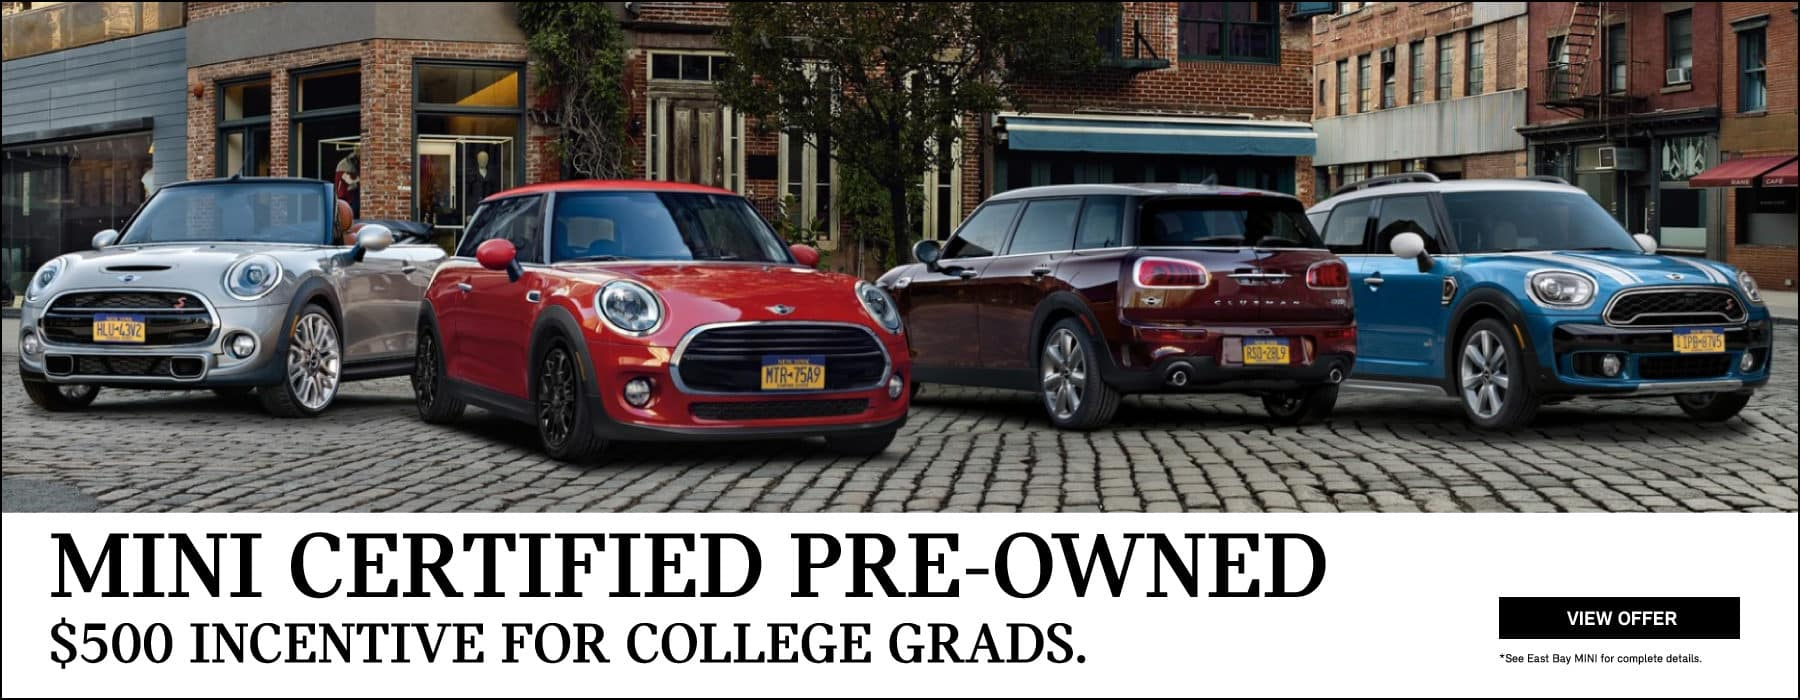 MINI Certified Pre-owned. $500 incentive for college grads. View offer button. Family of MINI's on brick road.